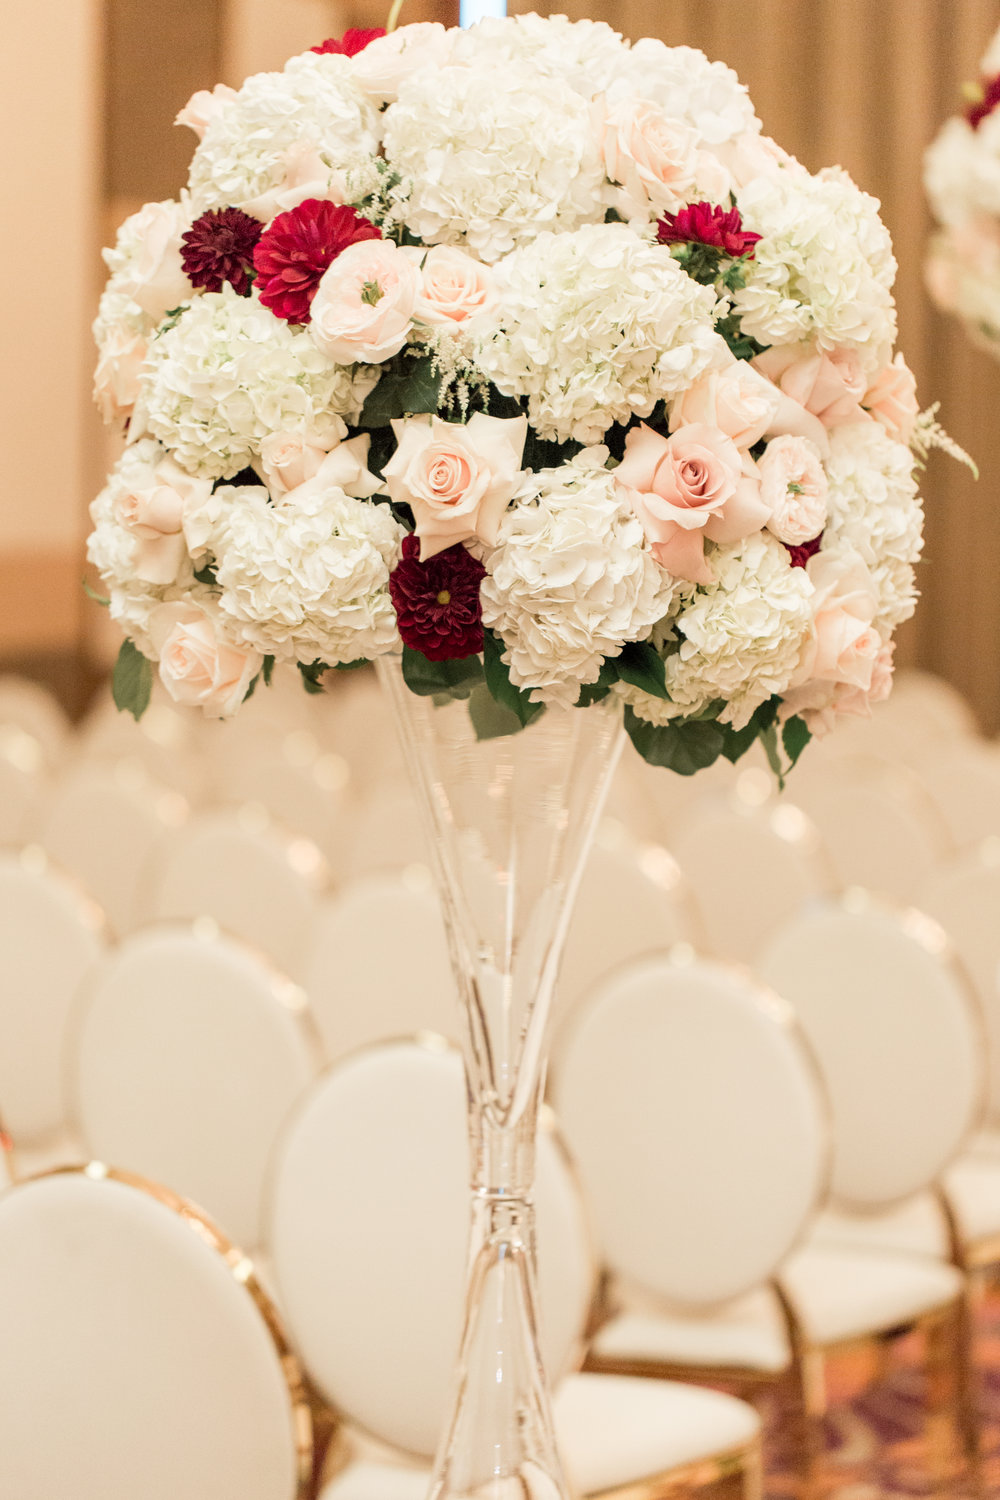 Andrea eppolito events las vegas wedding planner chinese white and red wedding flowers mightylinksfo